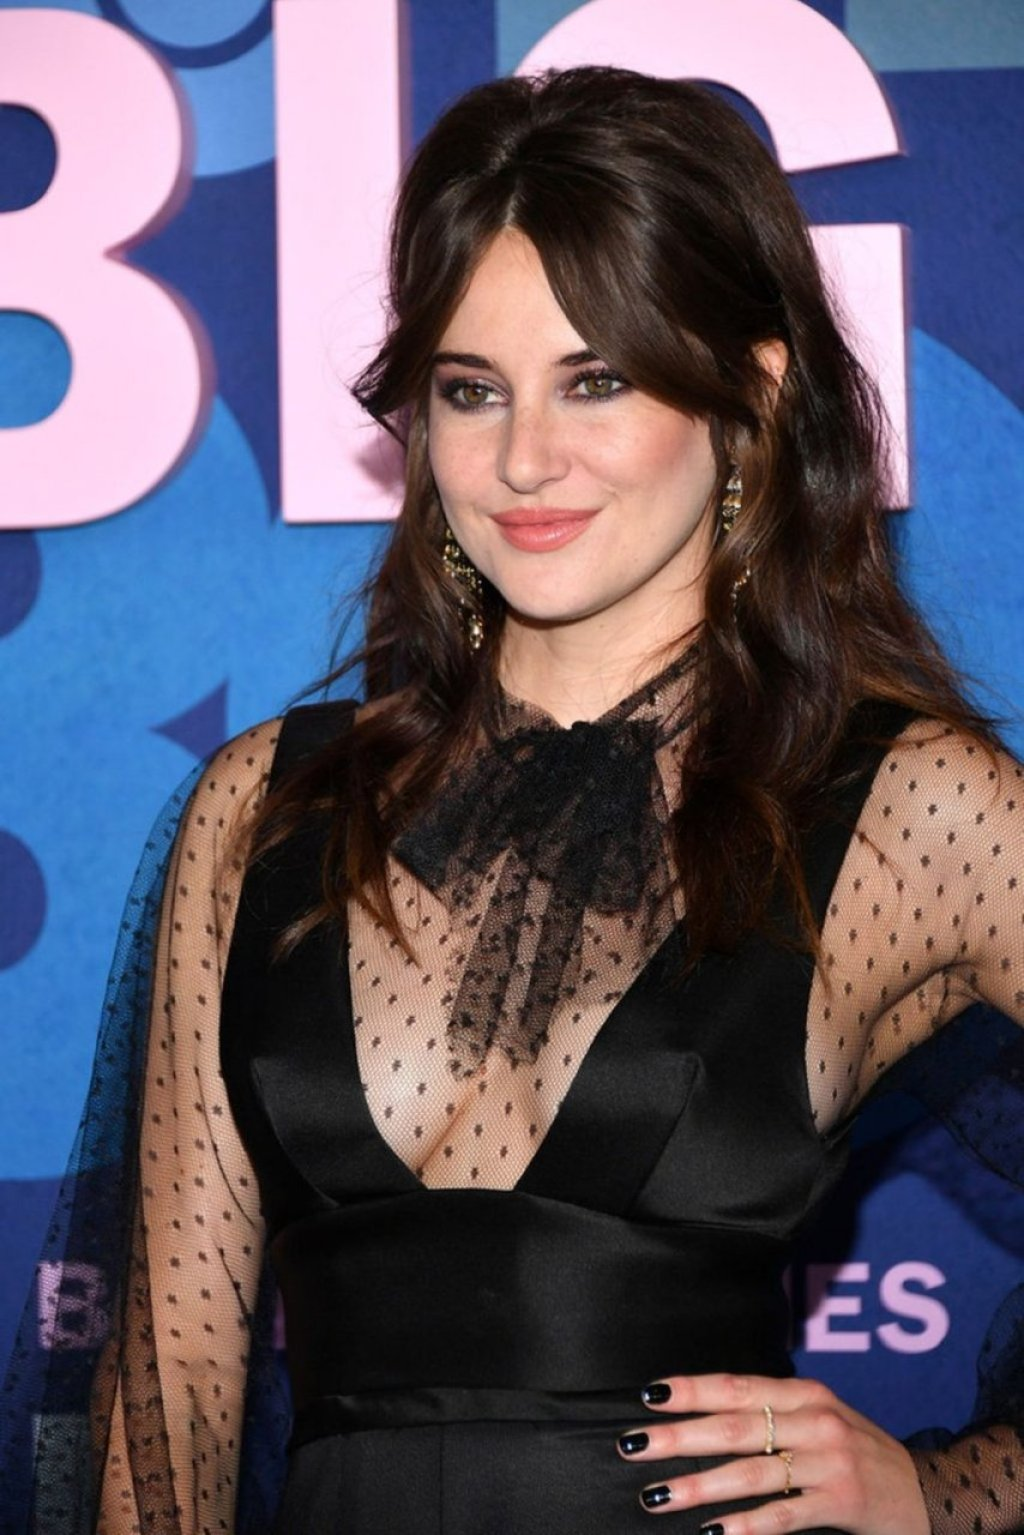 Shailene Woodley Sexy (60 Photos)